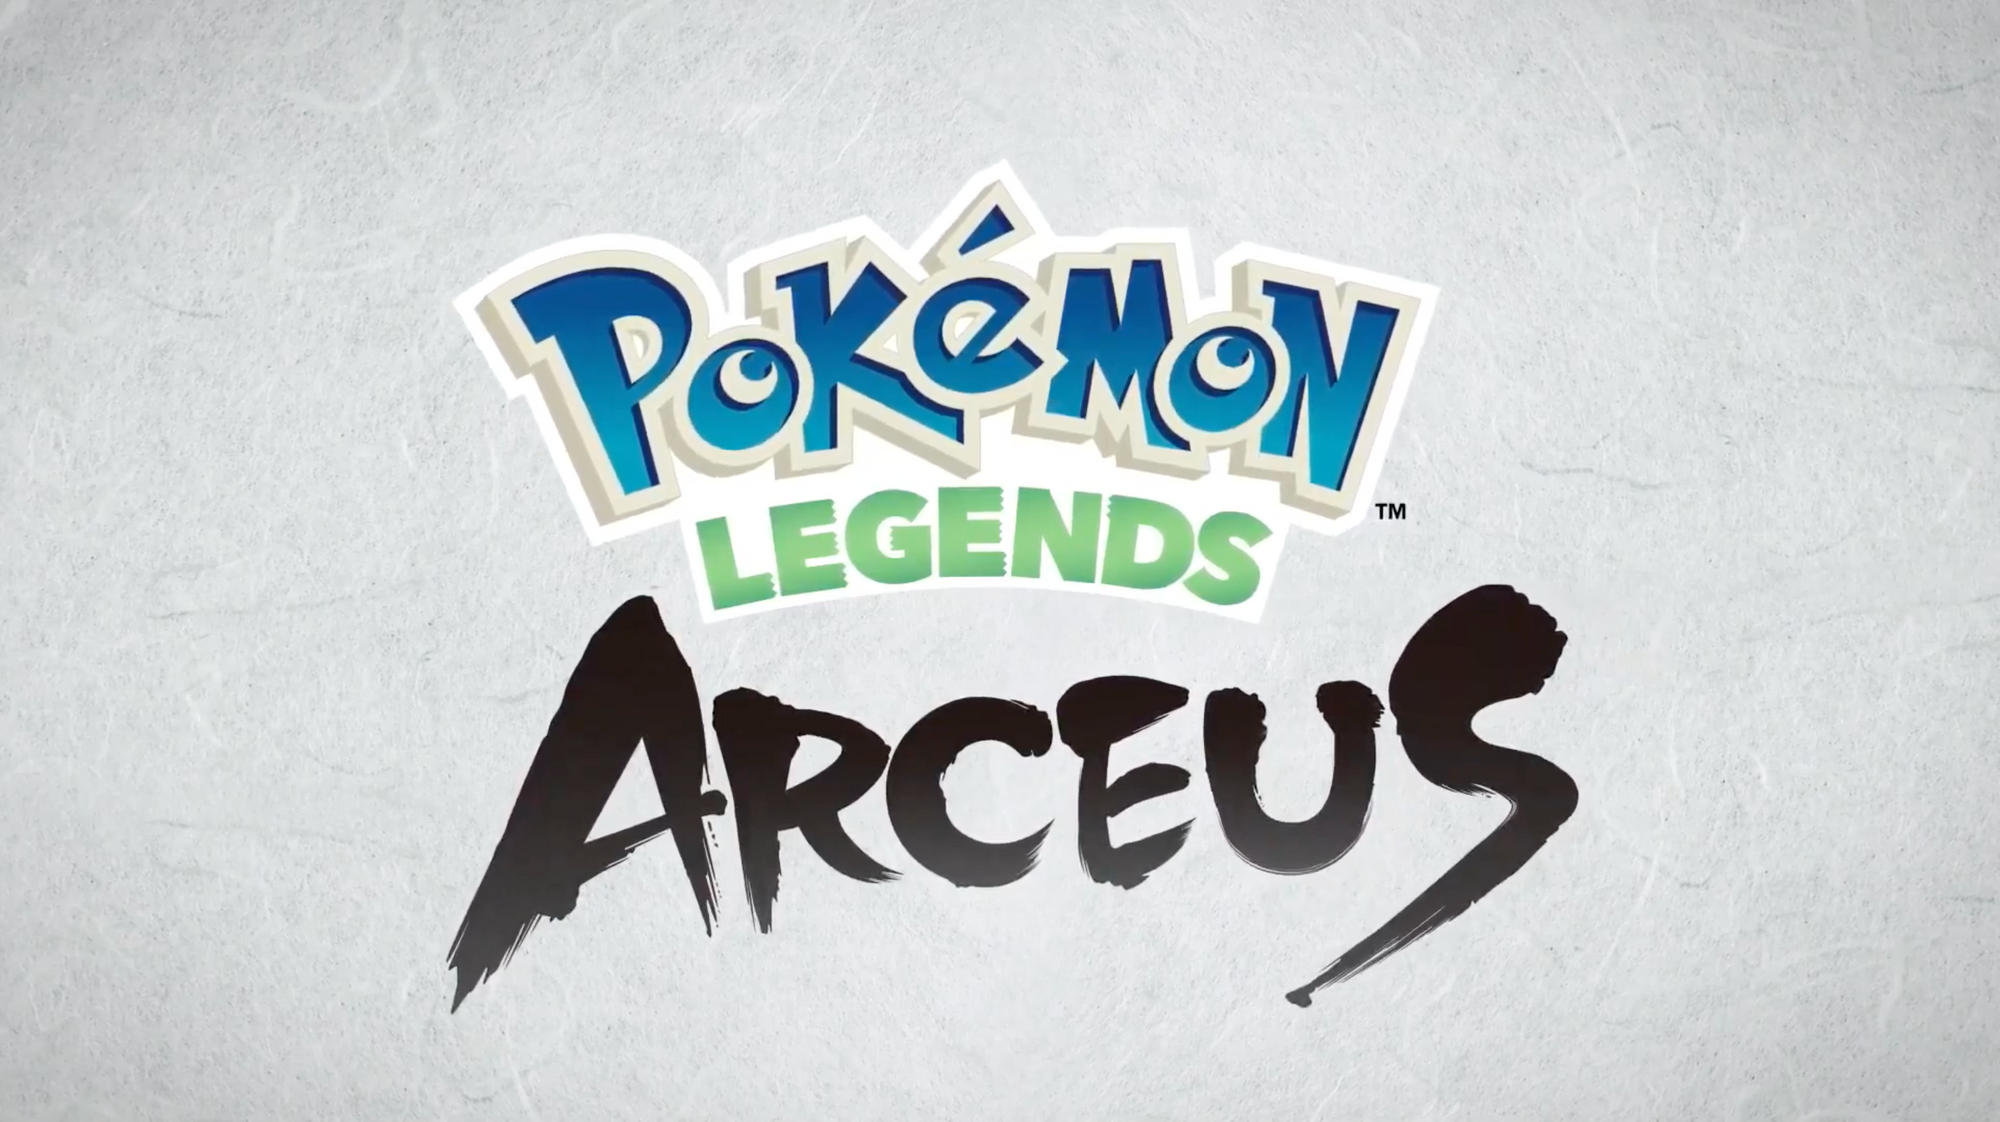 Pokemon Legends Arceus Announced for Early 2022